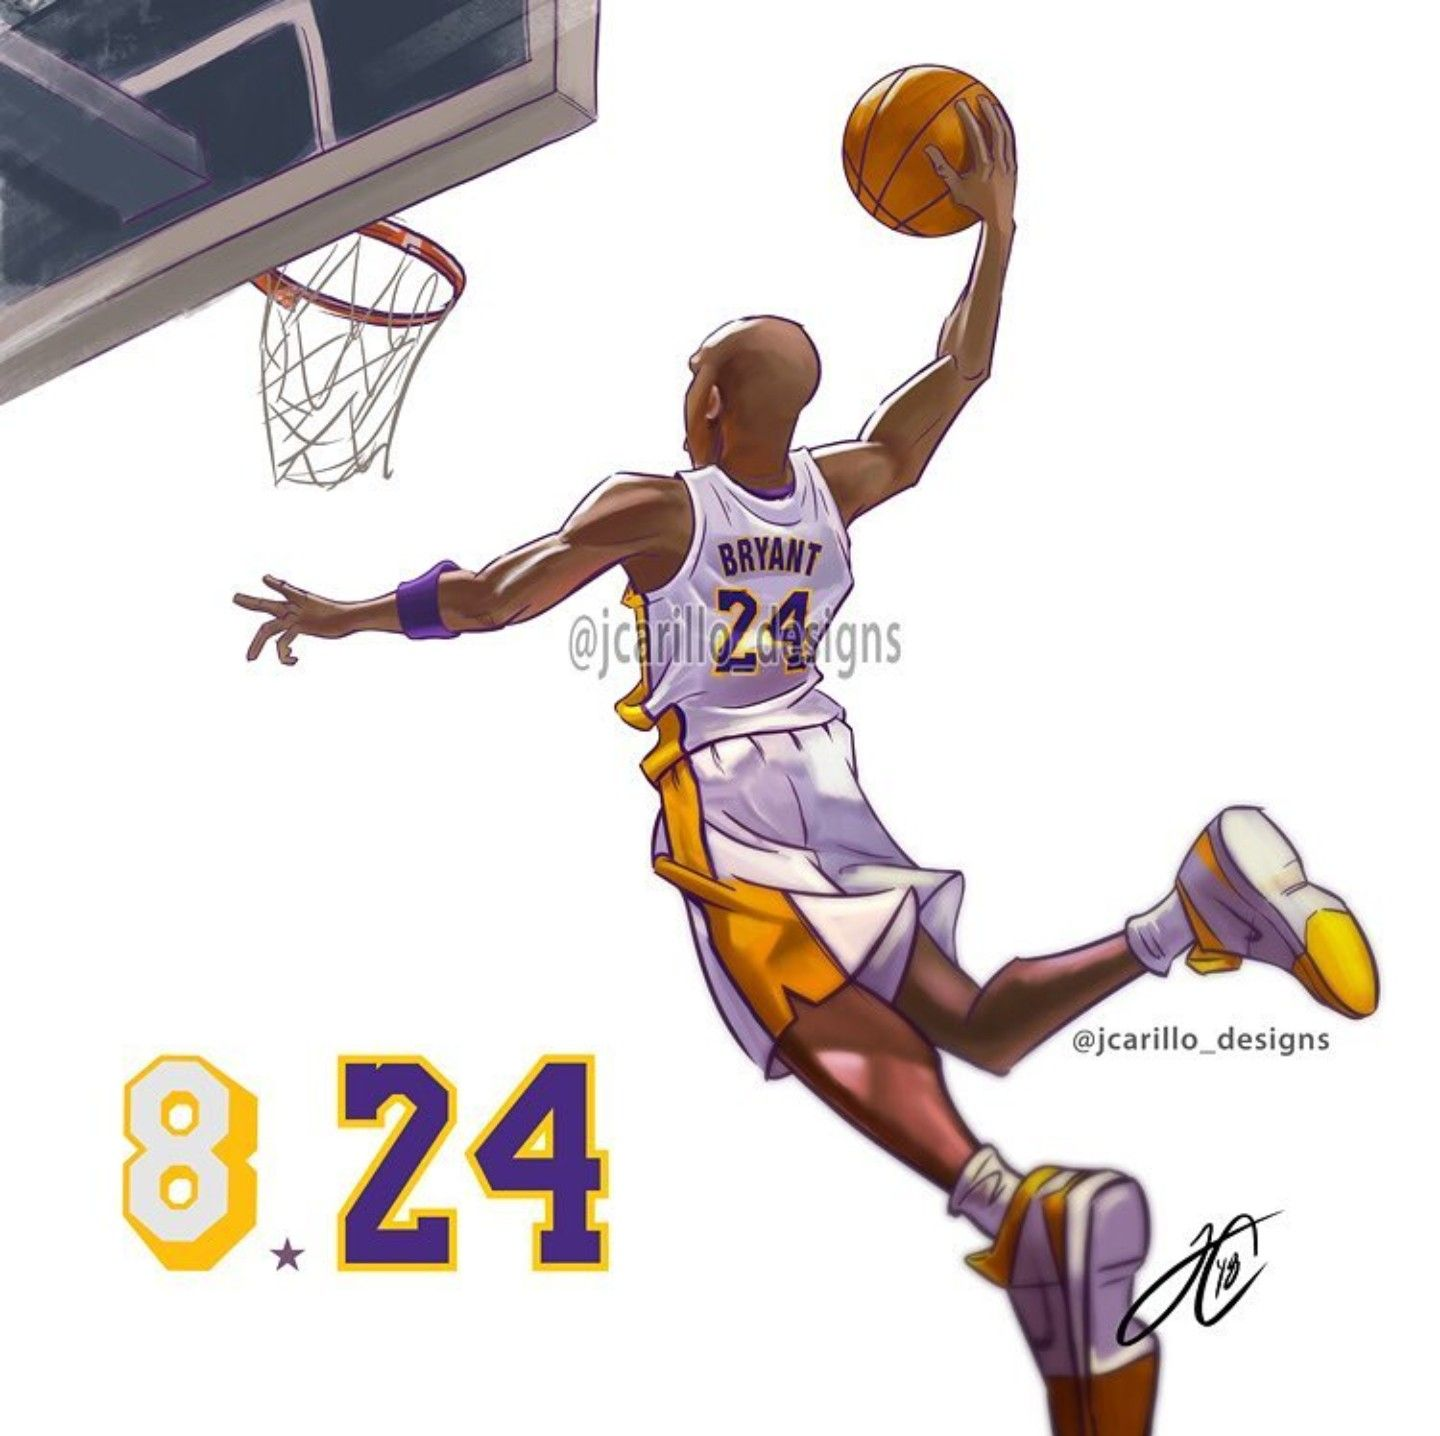 Pin by Ronnie Hurst on NBA Art Basketball pictures